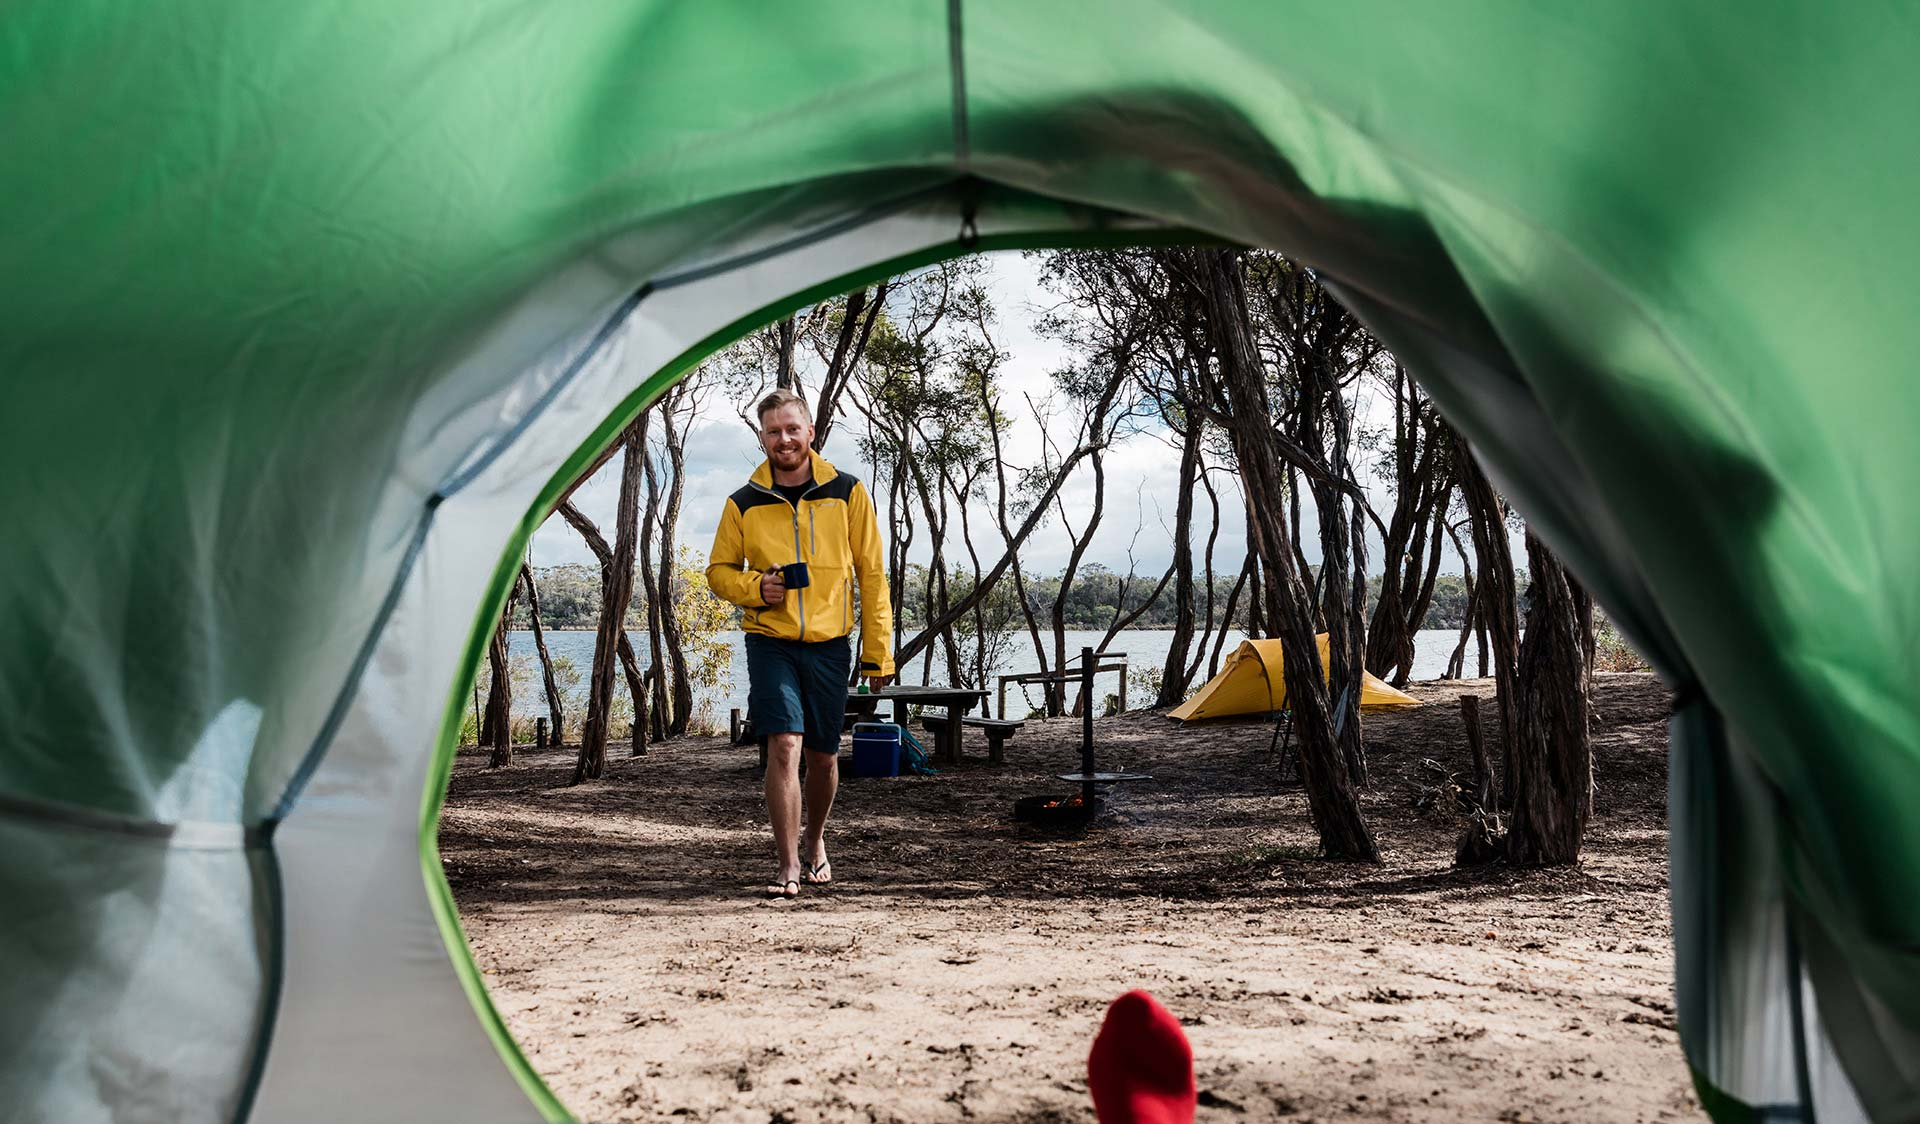 A man in a yellow jacket holding a cup of tea walks towards his partner in a tent